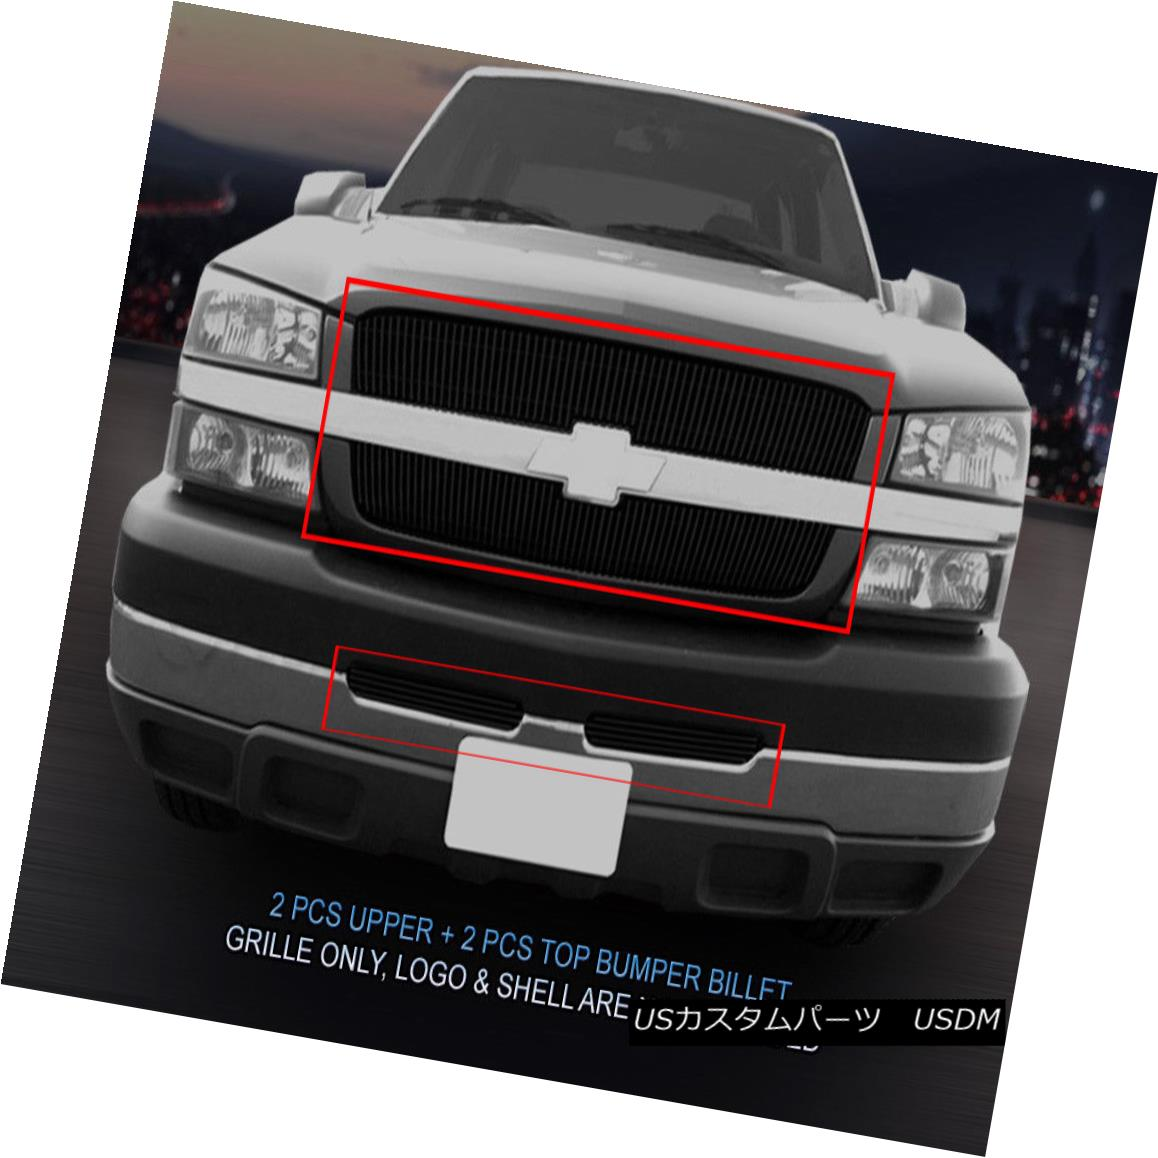 グリル Fits 2002-2006 Chevy Silverado/Avalanche Selected Models Black Billet Grille 2002-2006 Chevy Silverado / Aval anche選択モデルBlack Billet Grille